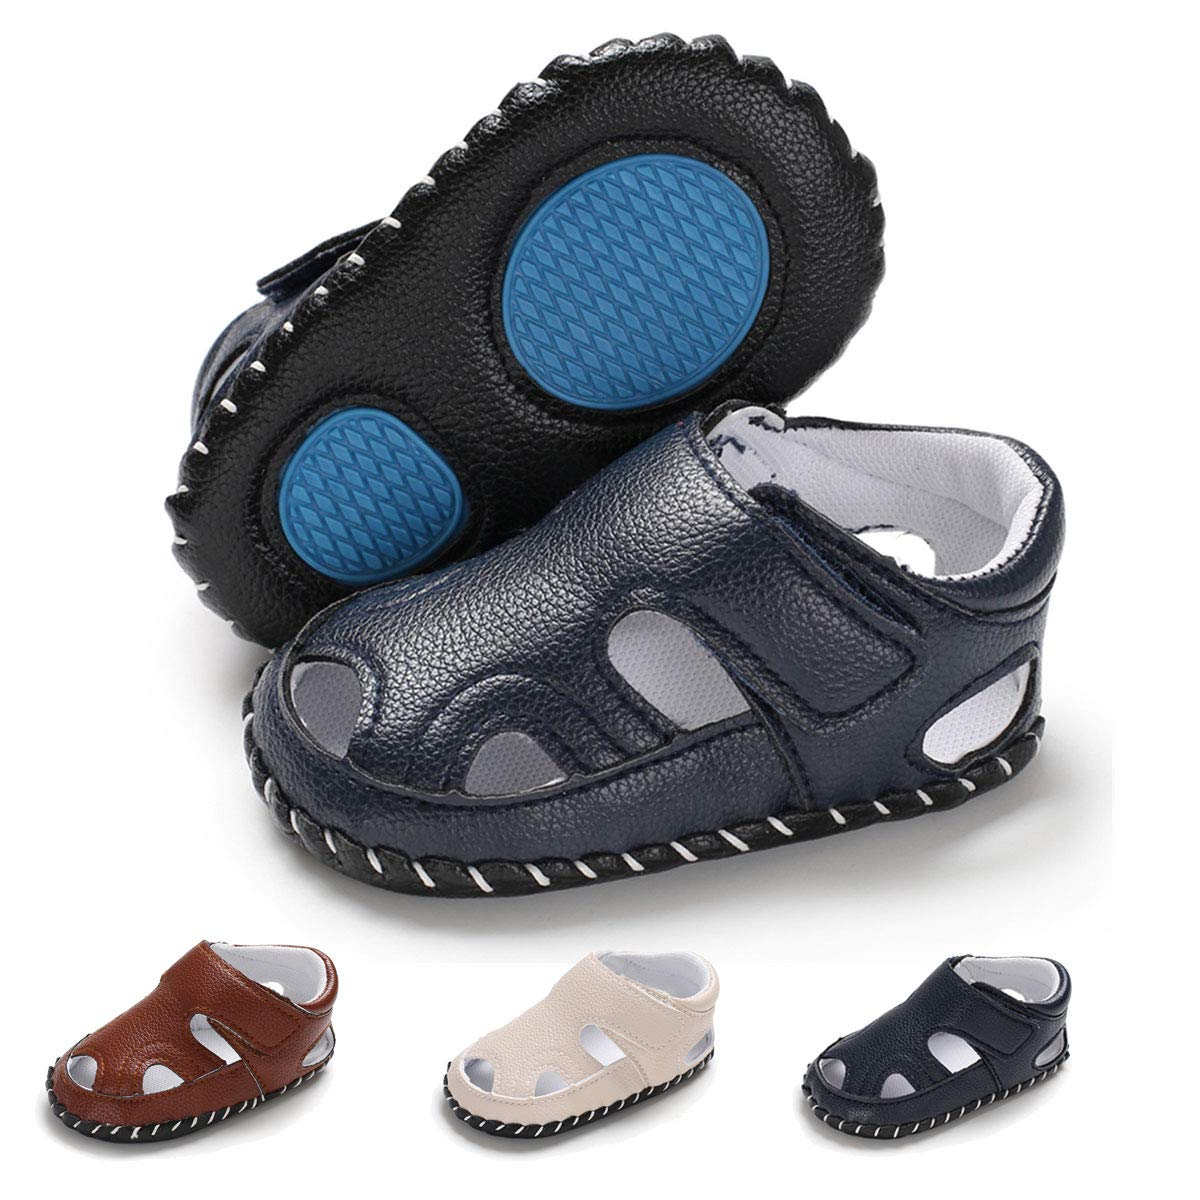 Baby Boys Girls Summer Sandals Closed-Toe Outdoor Soft Sole Anti-Slip Toddler First Walker Infant Newborn Crib Shoes